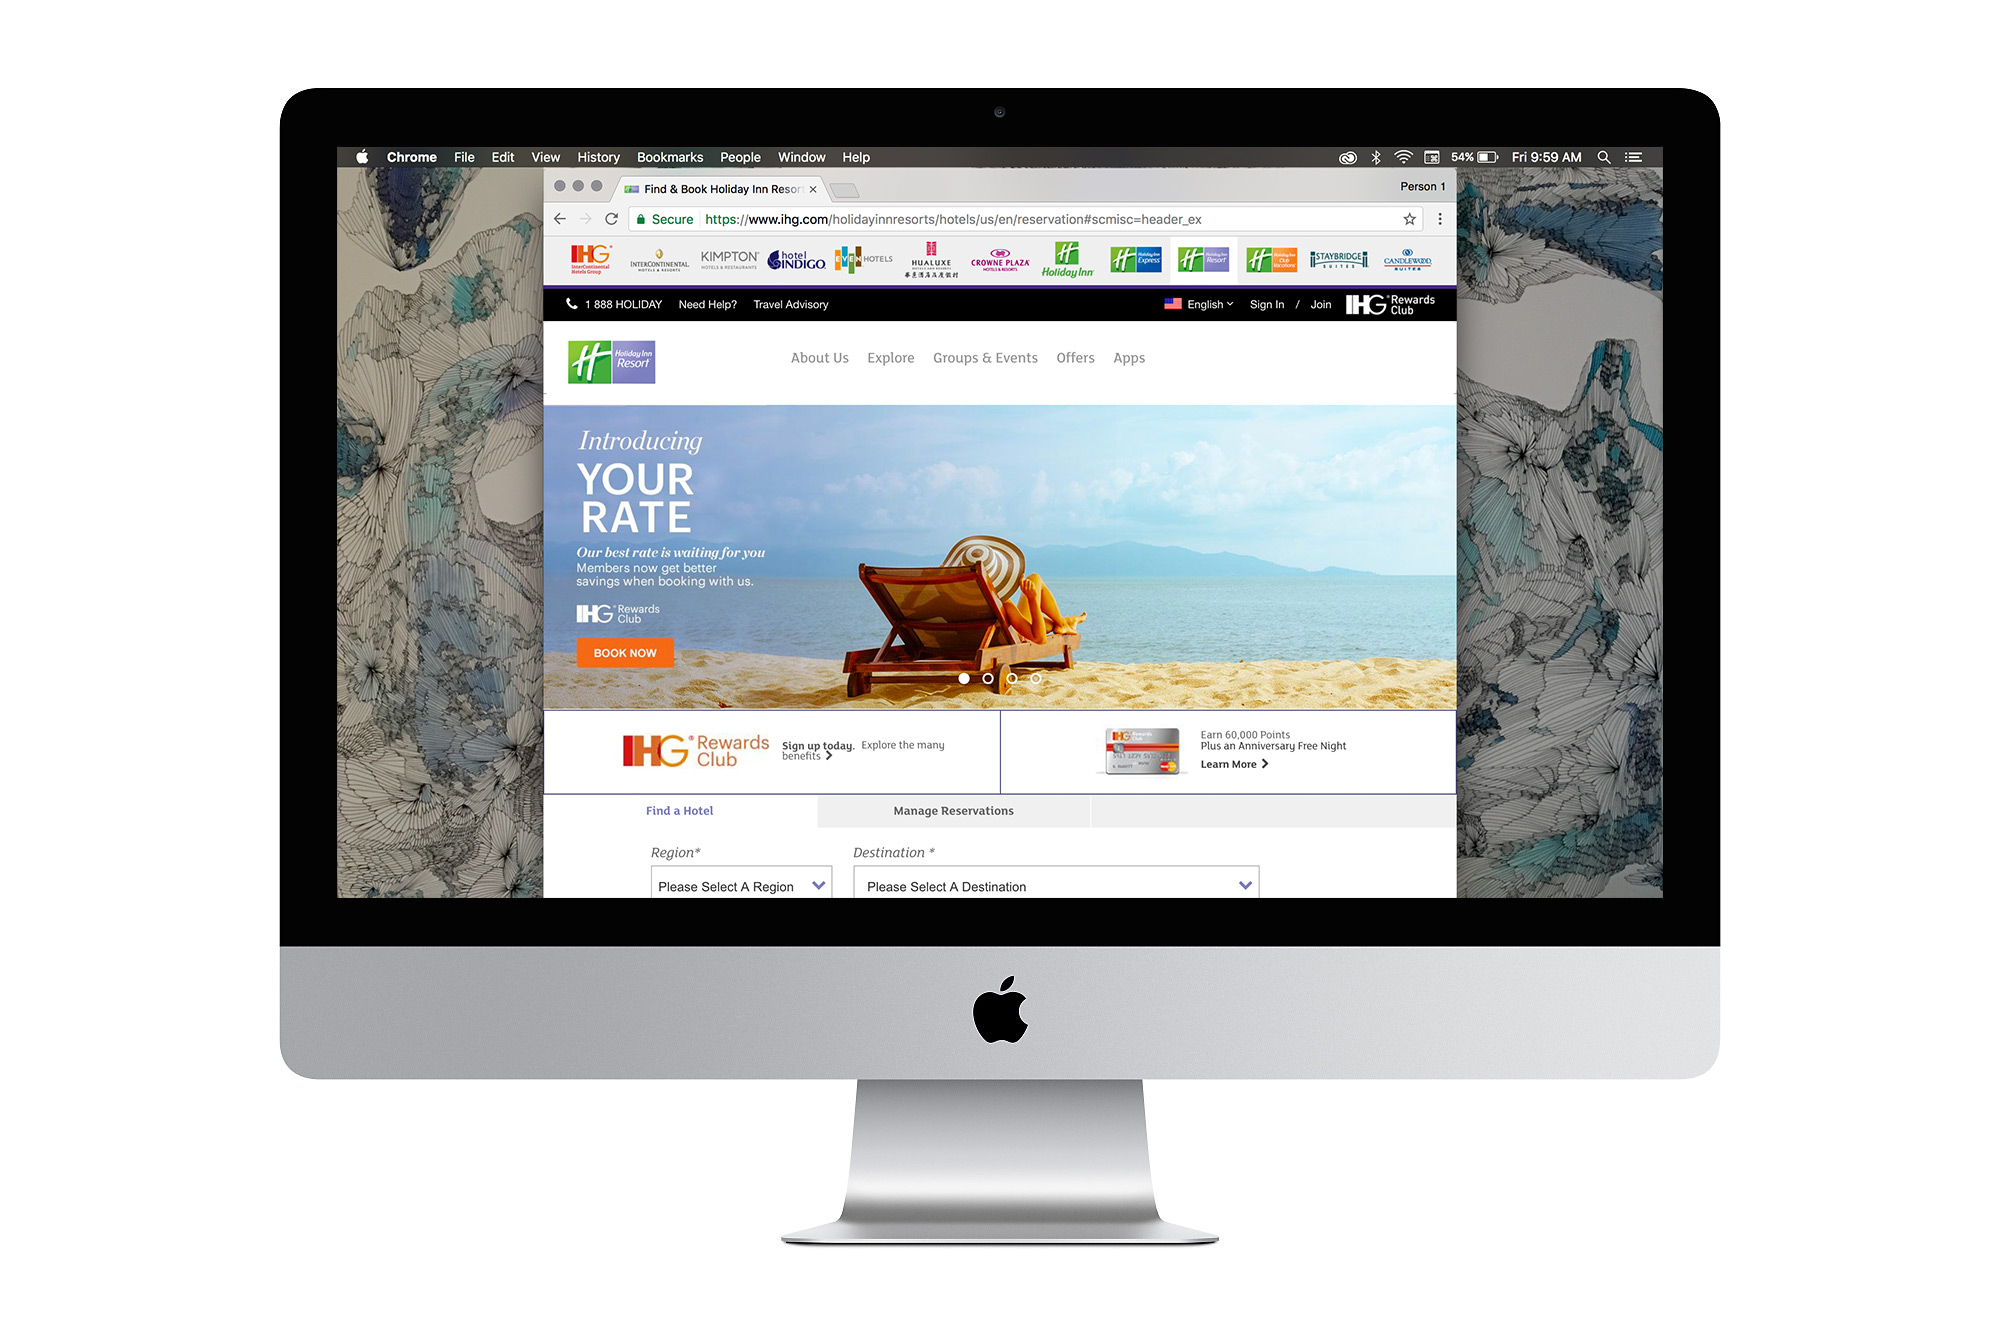 The homepage image for Holiday Inn Resorts, featuring a woman sunbathing alone on a wooden chair by the beach.